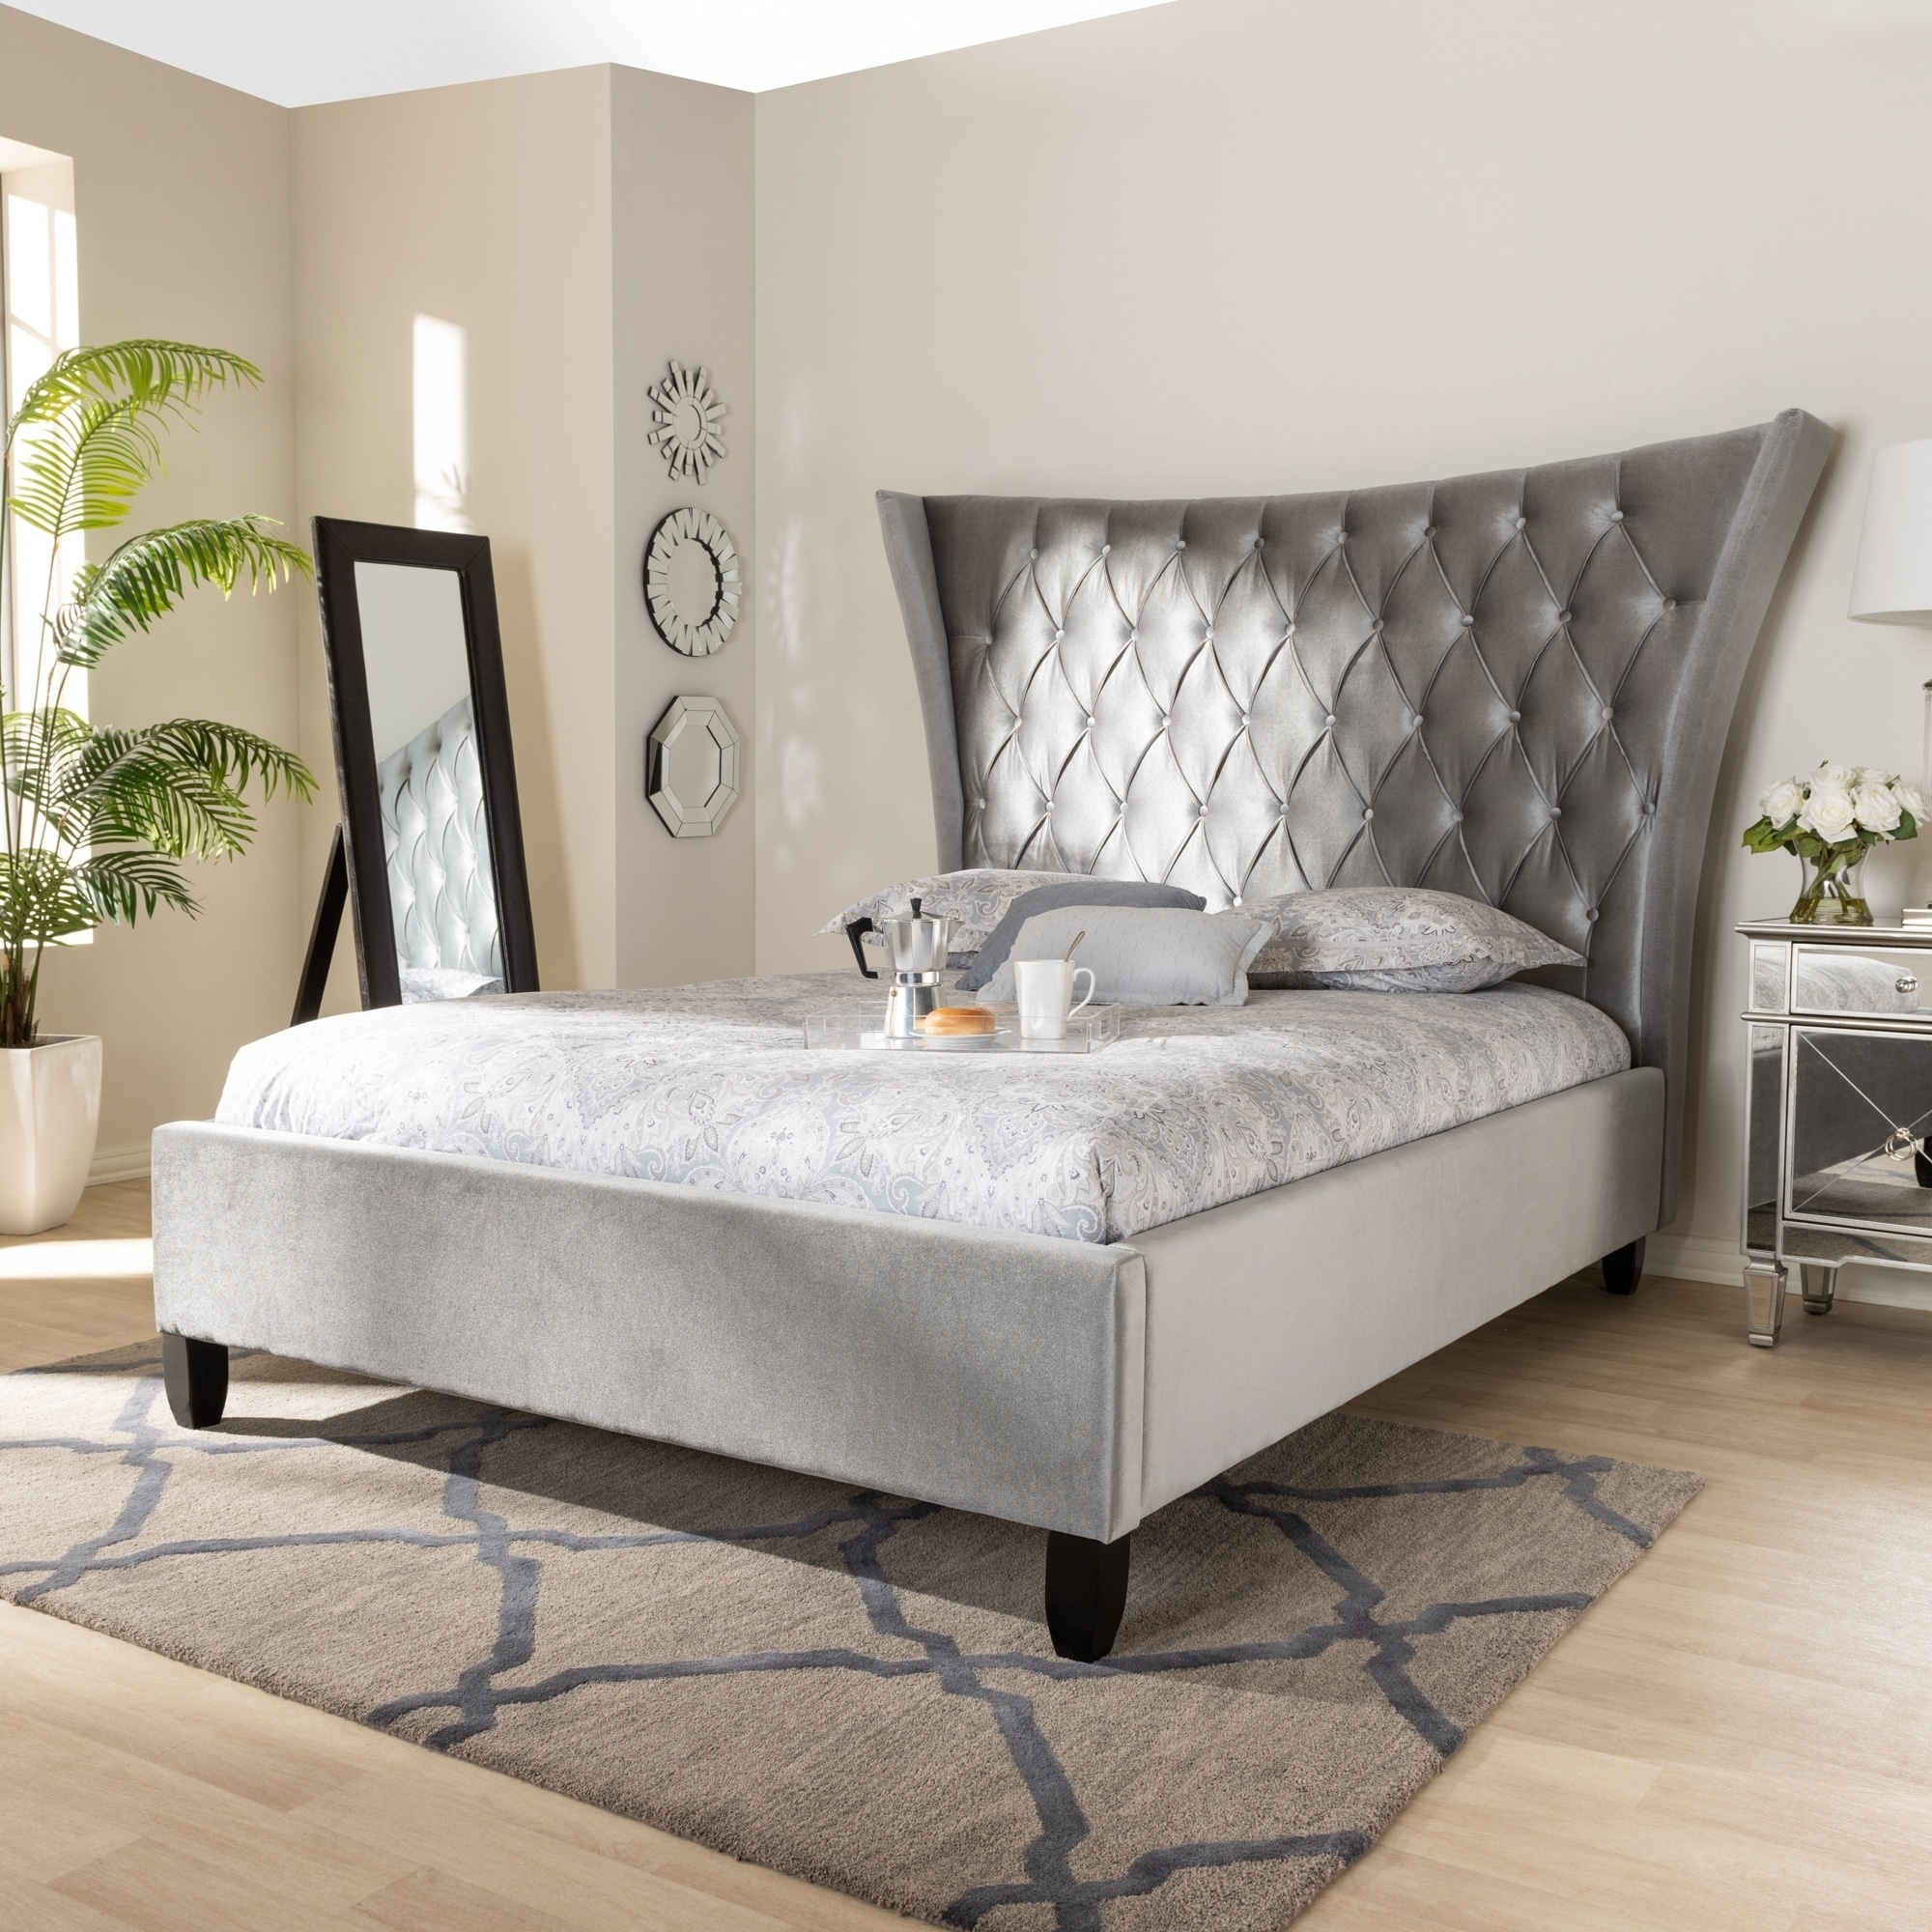 Shop Black Friday Deals On Glam Velvet Fabric Platform Bed With Tall Wingback Headboard Overstock 28031994